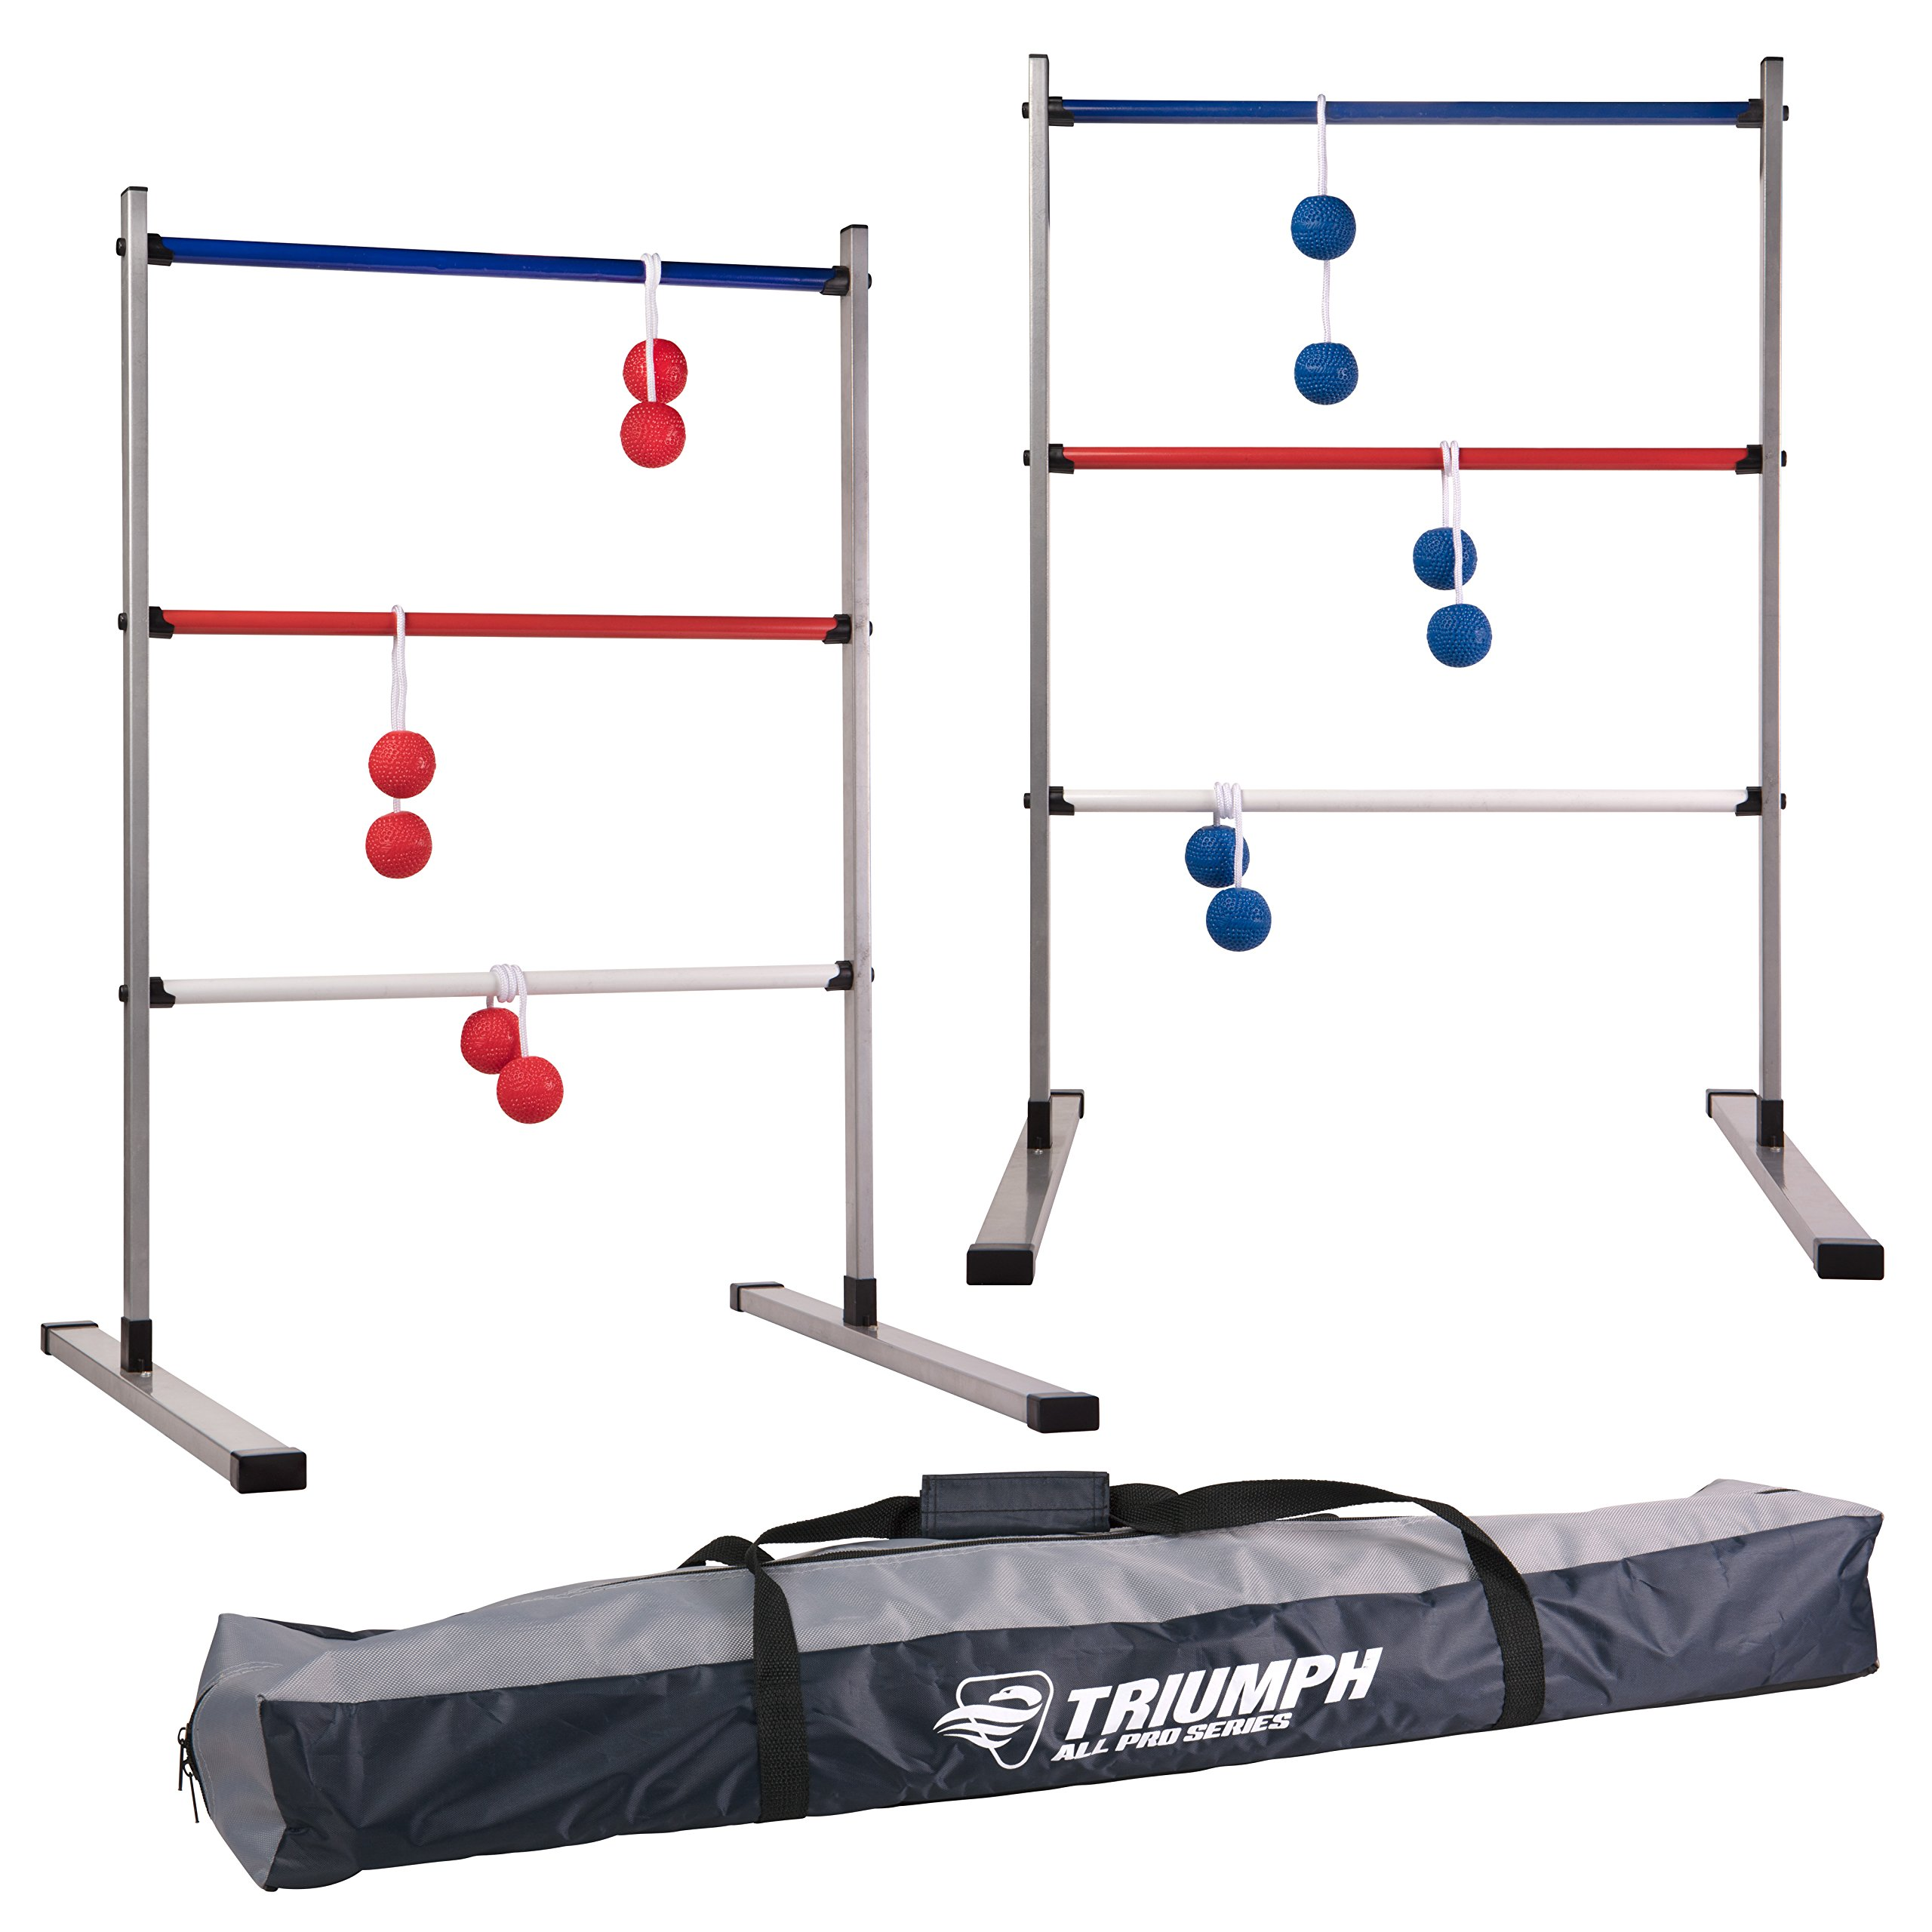 Triumph All Pro Series Pressure Fit Ladderball Set by Triumph Sports